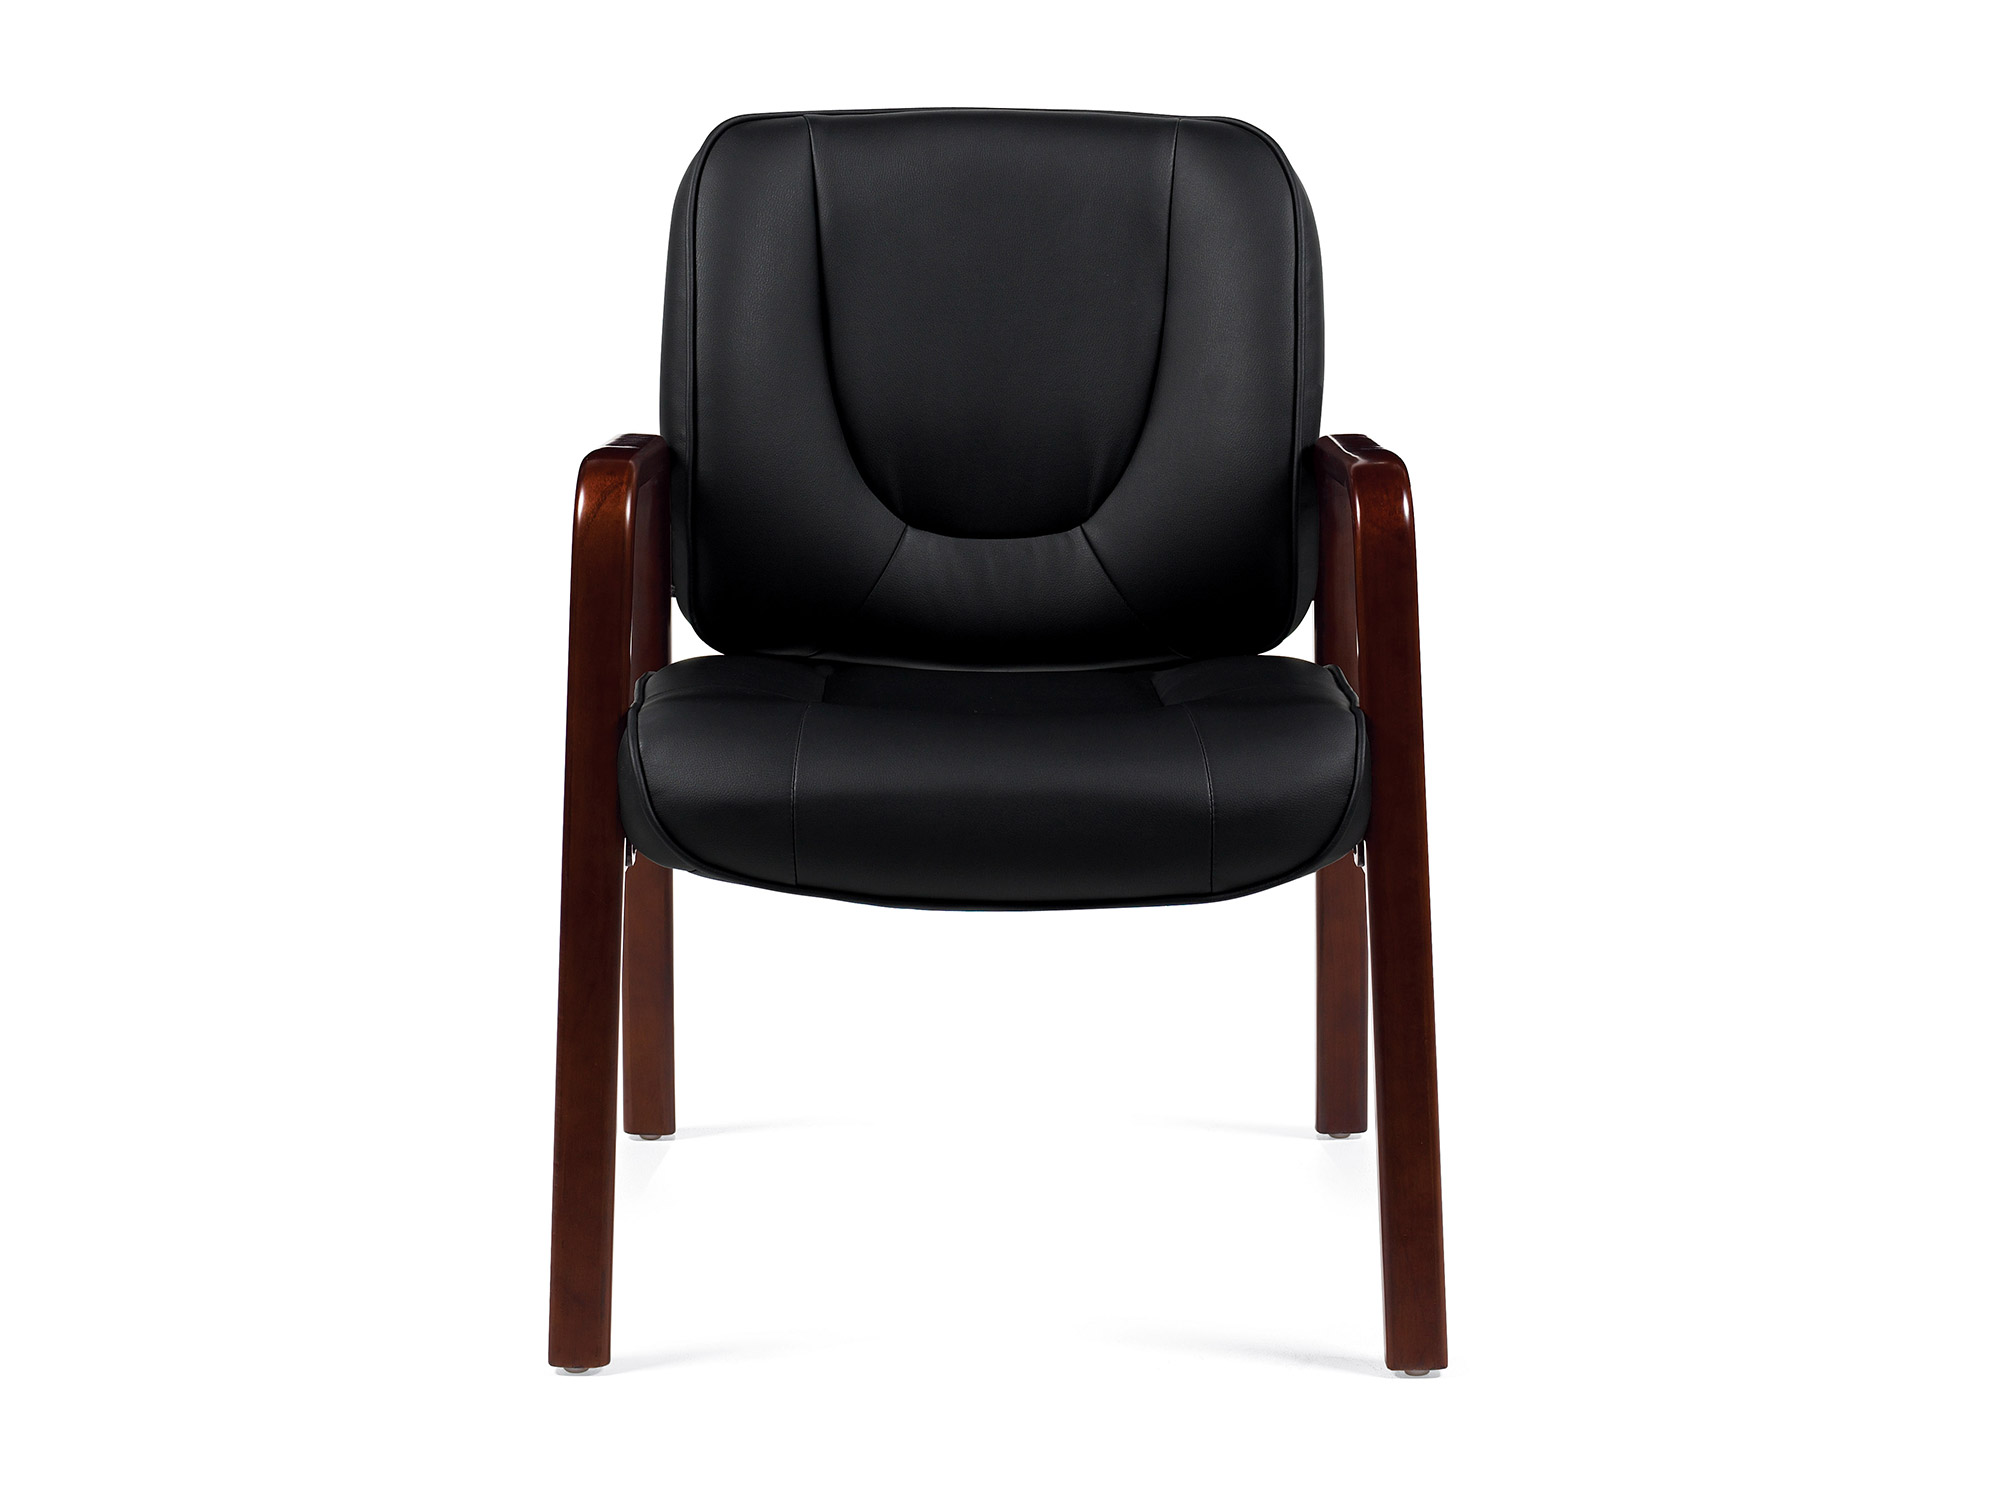 chairs for office 0 IZIHBXD